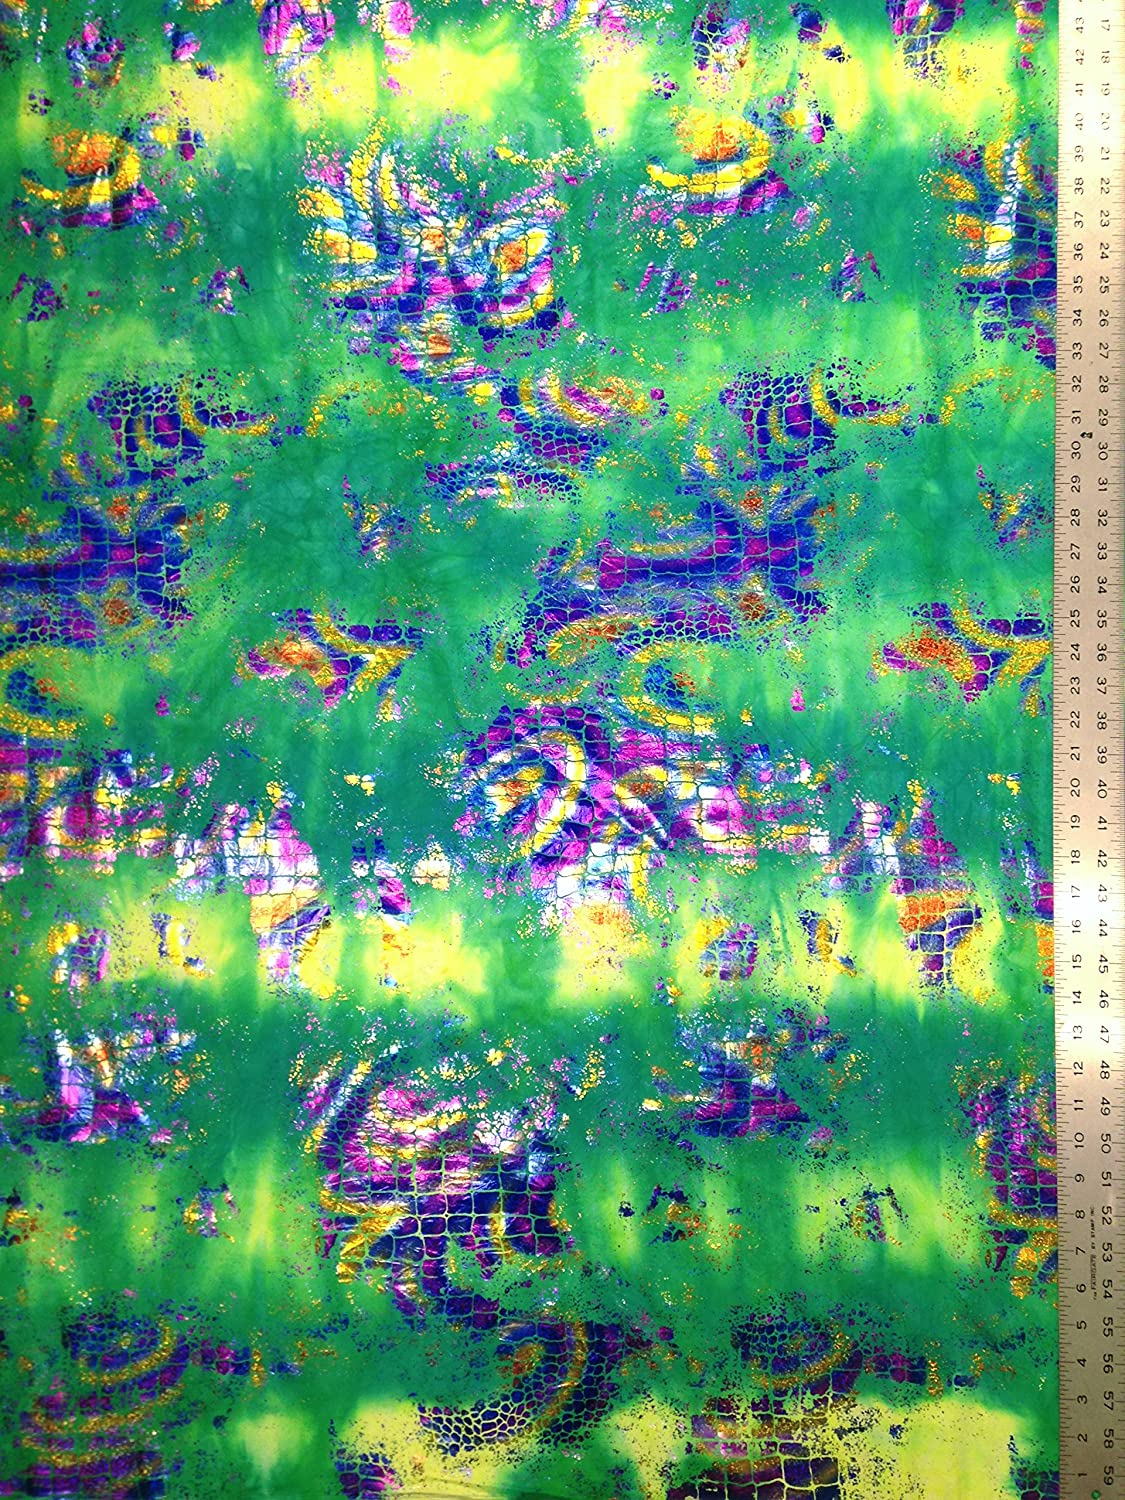 Holographic Shiny Foil Big Reptile Pattern on Bright Stretch Crease Nylon Spandex Fabric By the Yard Green